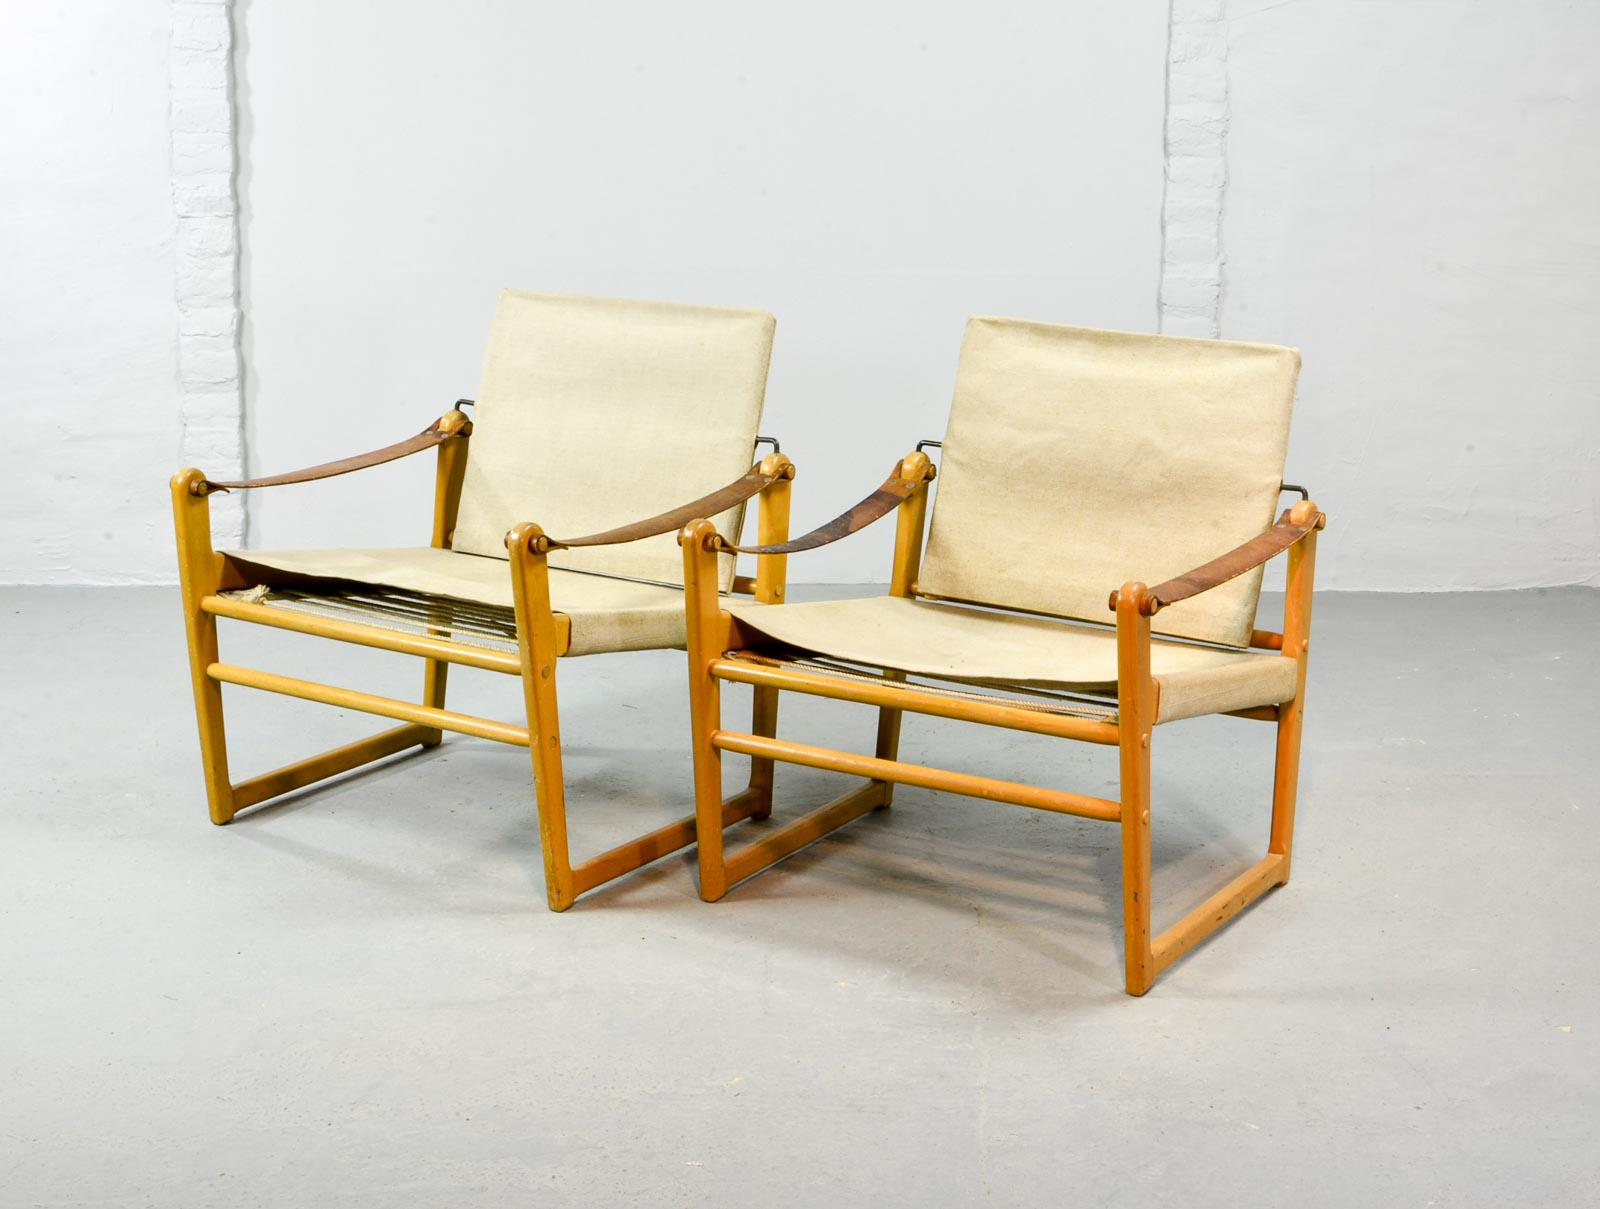 Pair Of Mid Century Swedish Design Safari Chairs By Bengt Ruda For Ikea,  1960s